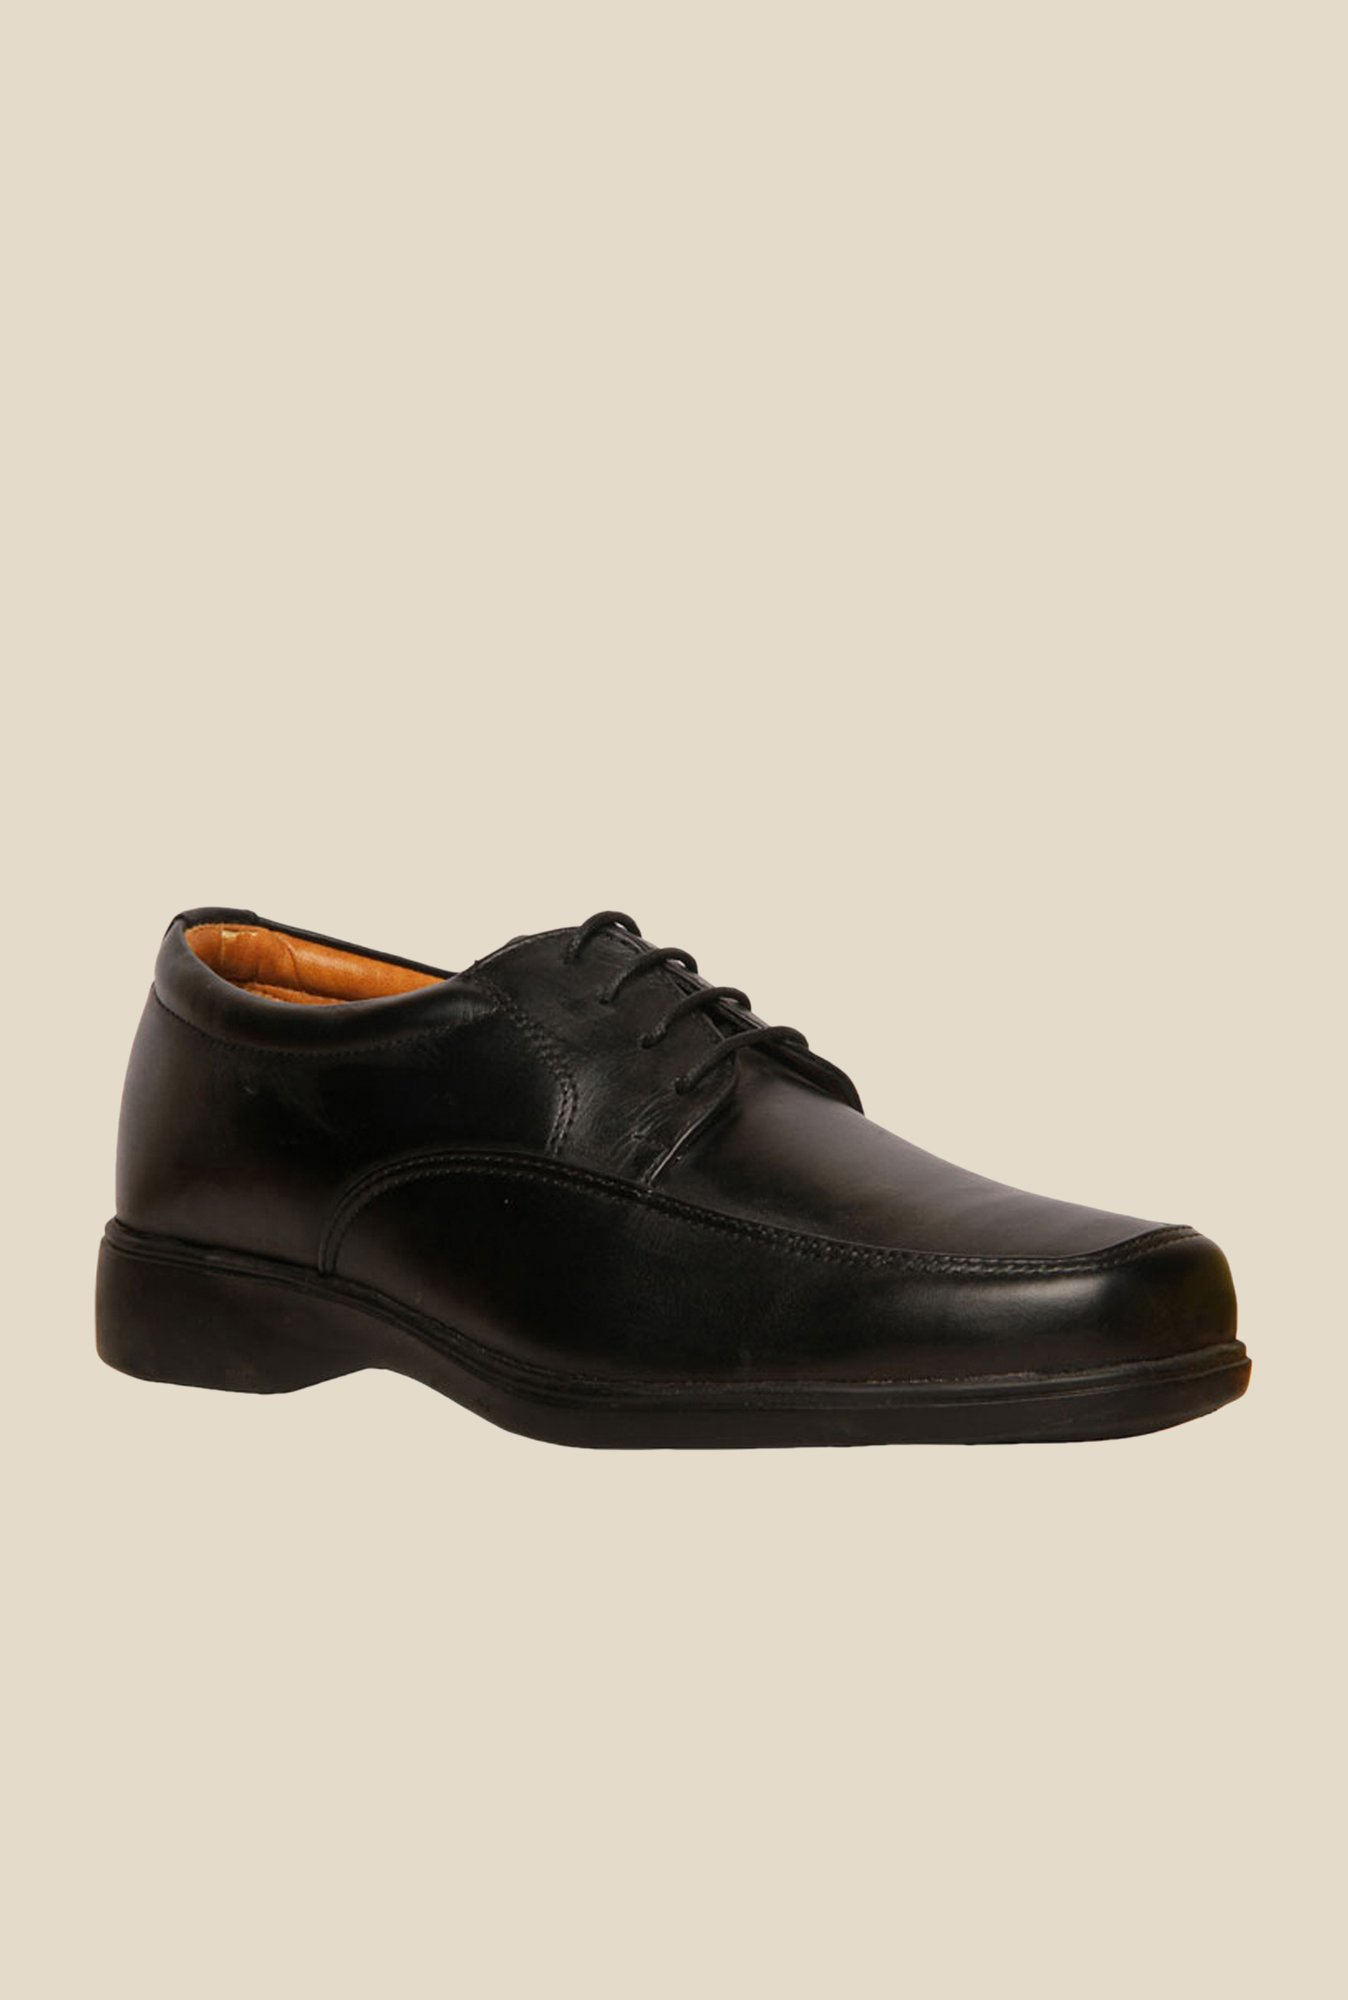 Bata Jackson Black Derby Shoes